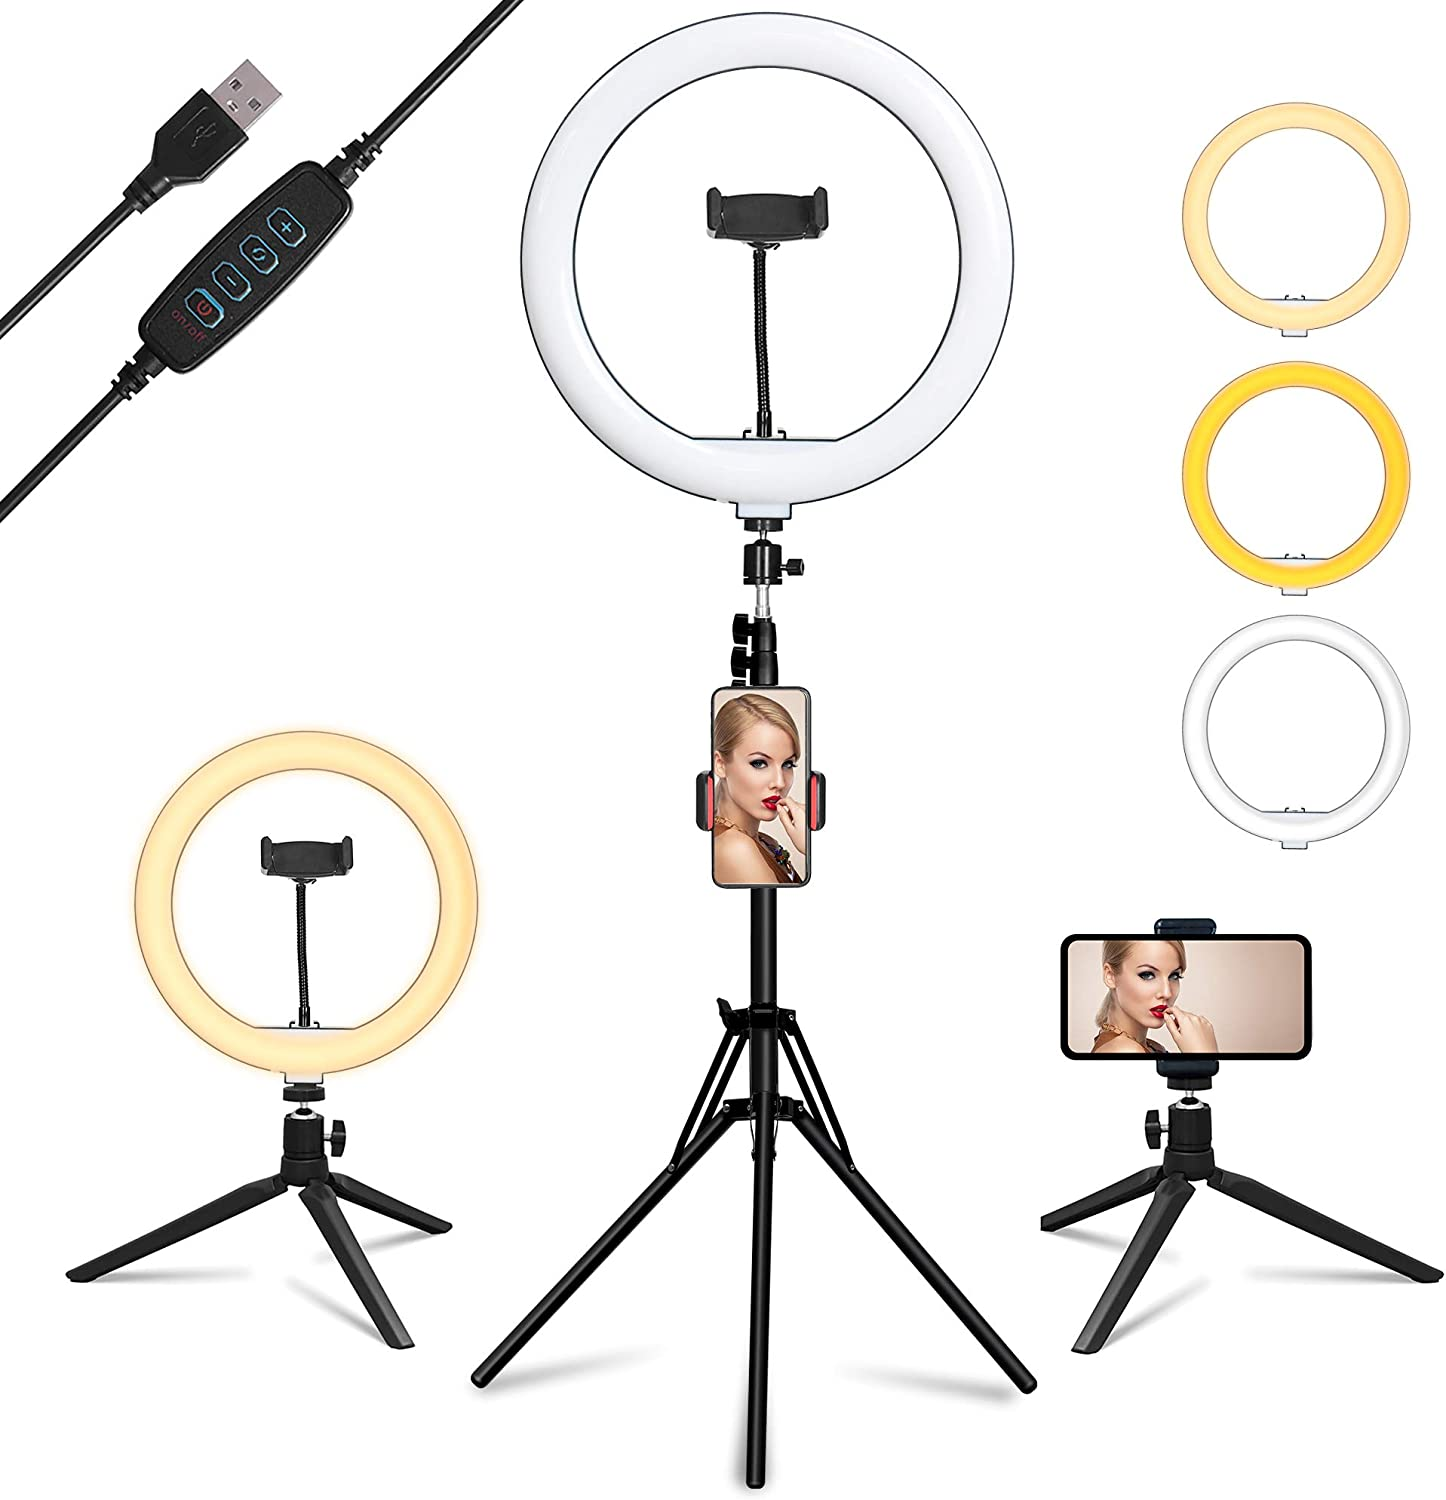 """Ring Light with Mirror, Summifit 12"""" Circle LED Light, Bluetooth Halo Lighting with 2 Tripod Stand, 3 Phone Holder for YouTube, TikTok, Live Streaming, Makeup, Selfie, iPhone Android"""